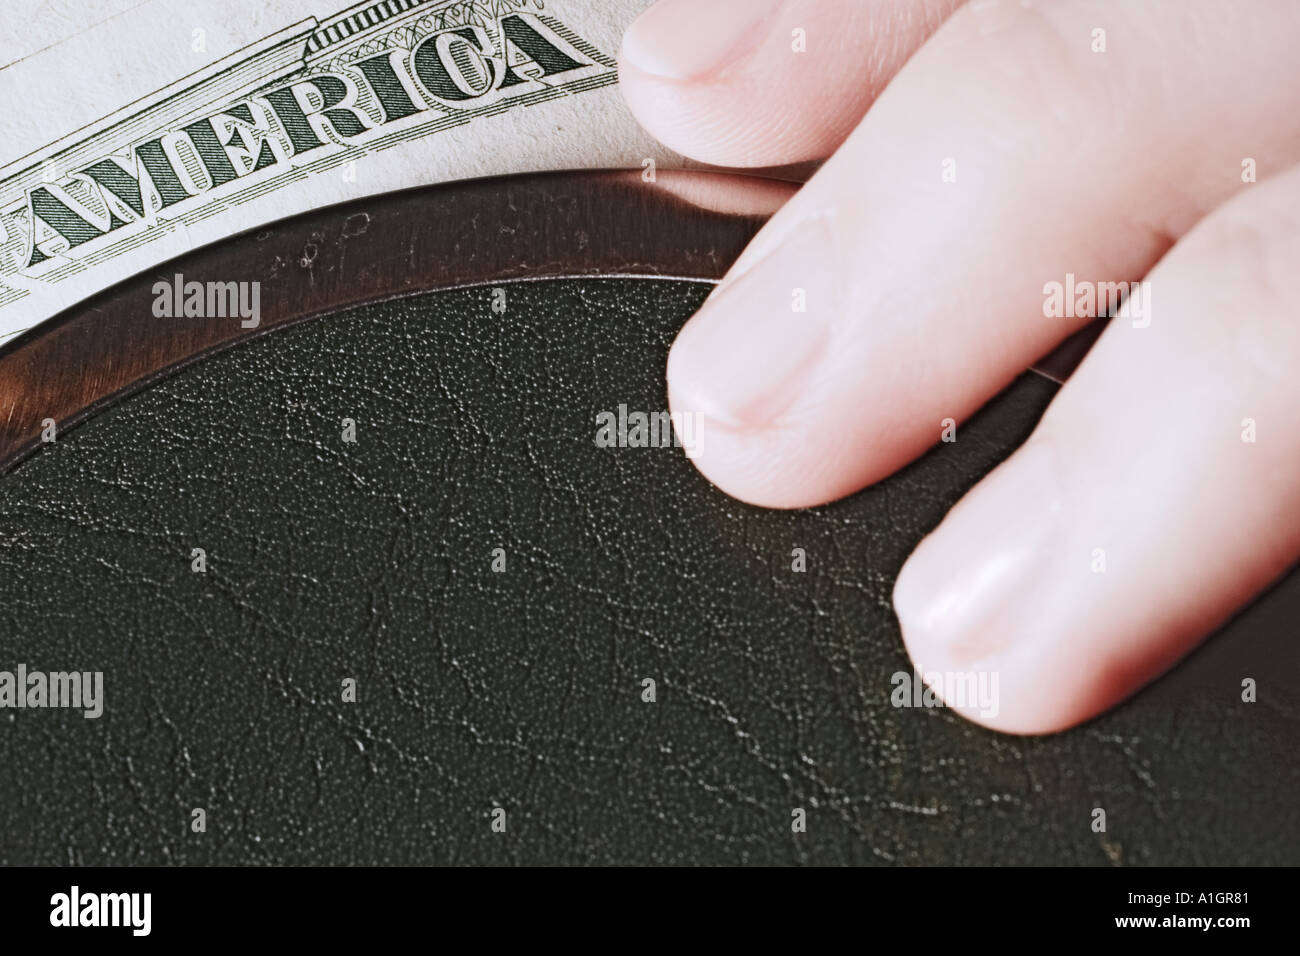 Hand On Open Purse With Dollar Bill - Stock Image